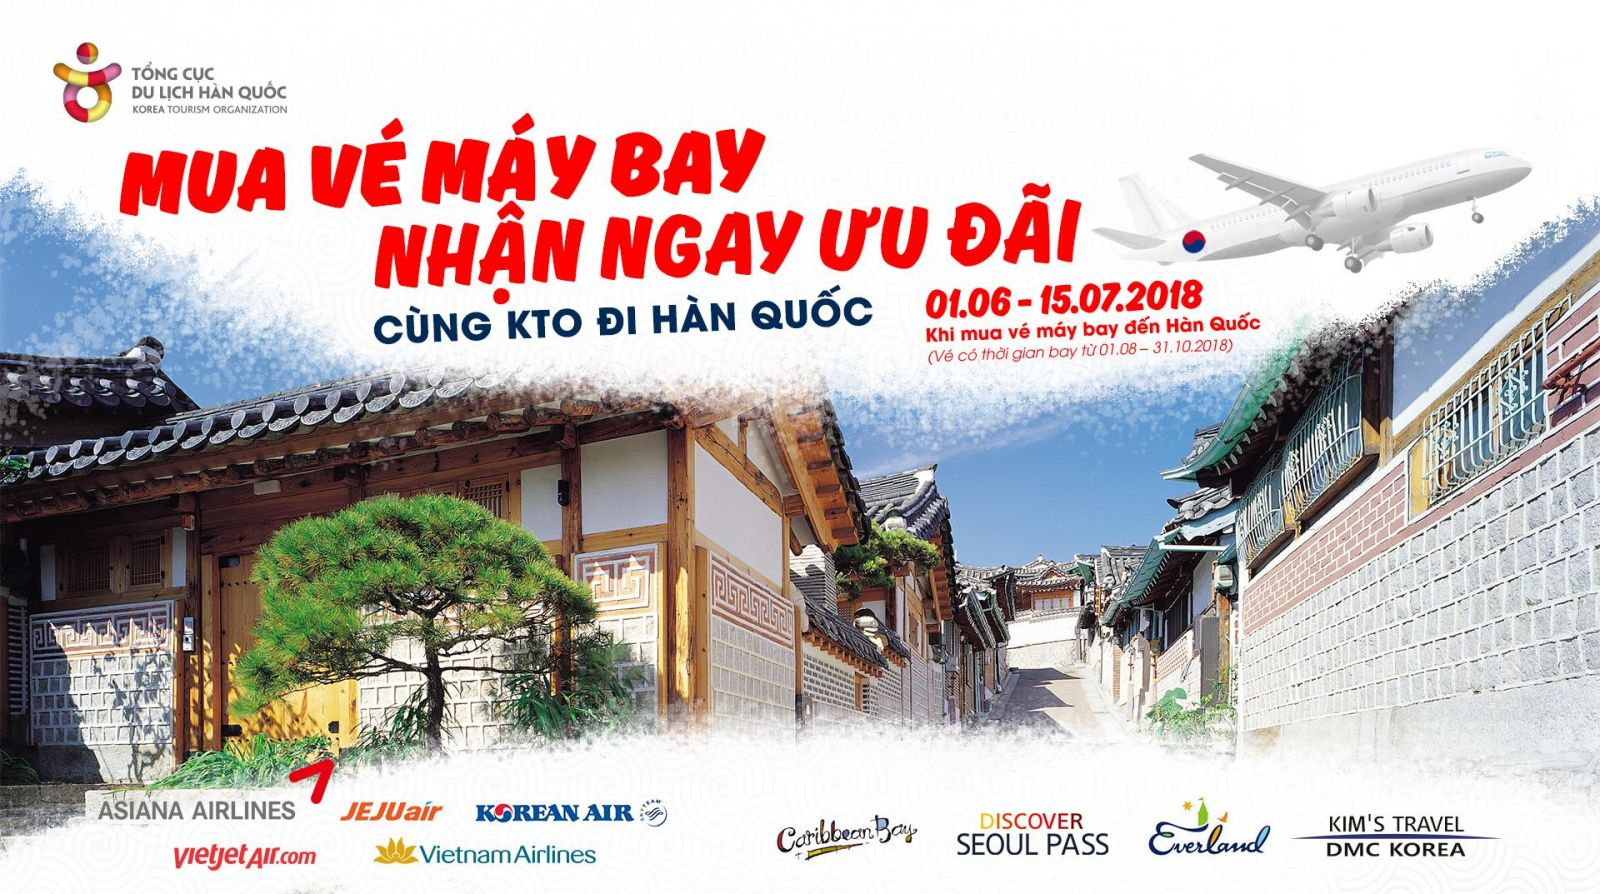 event cung kto di han quoc